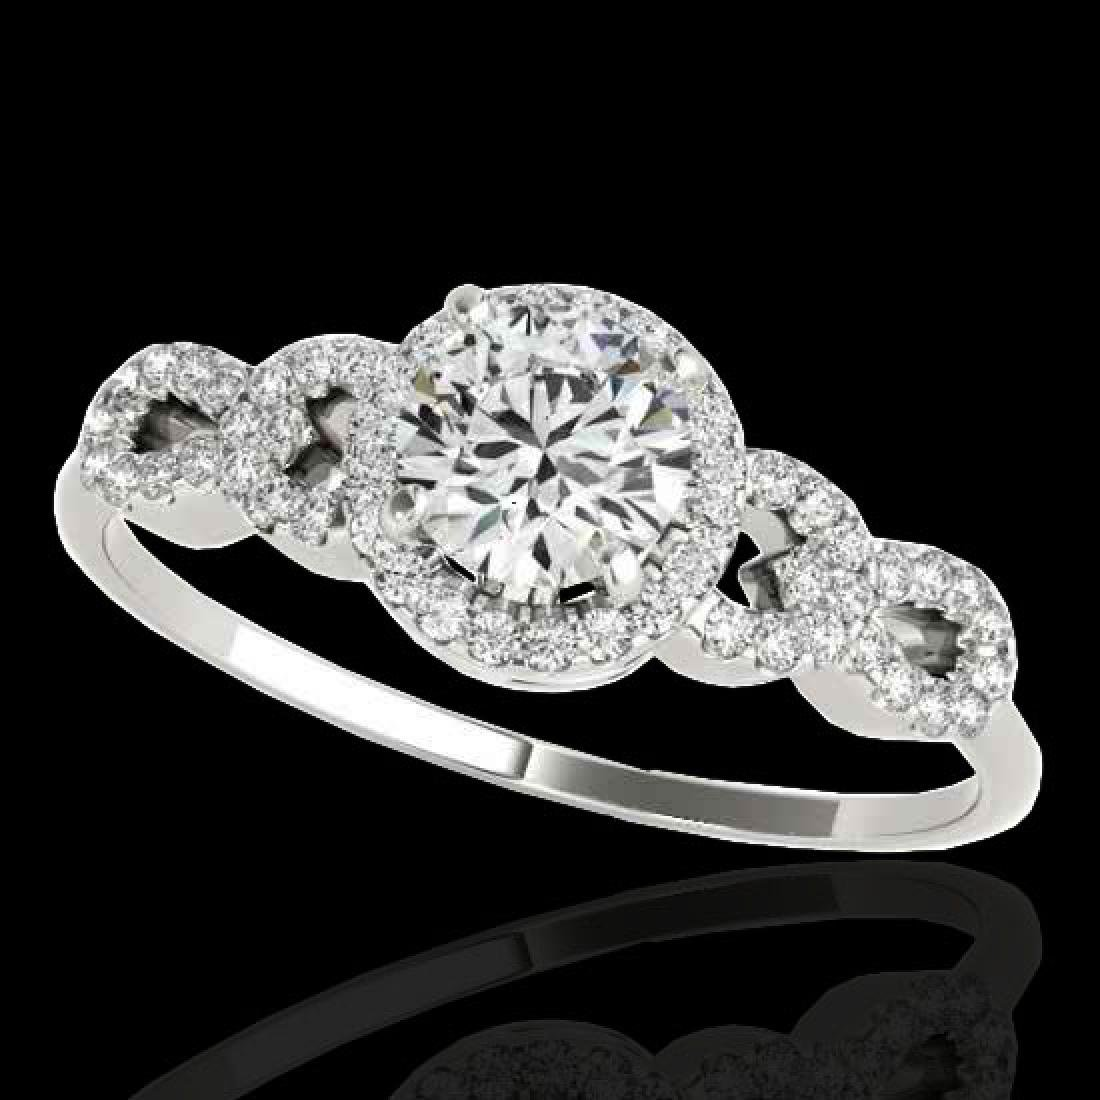 1.33 CTW H-SI/I Certified Diamond Solitaire Ring 10K